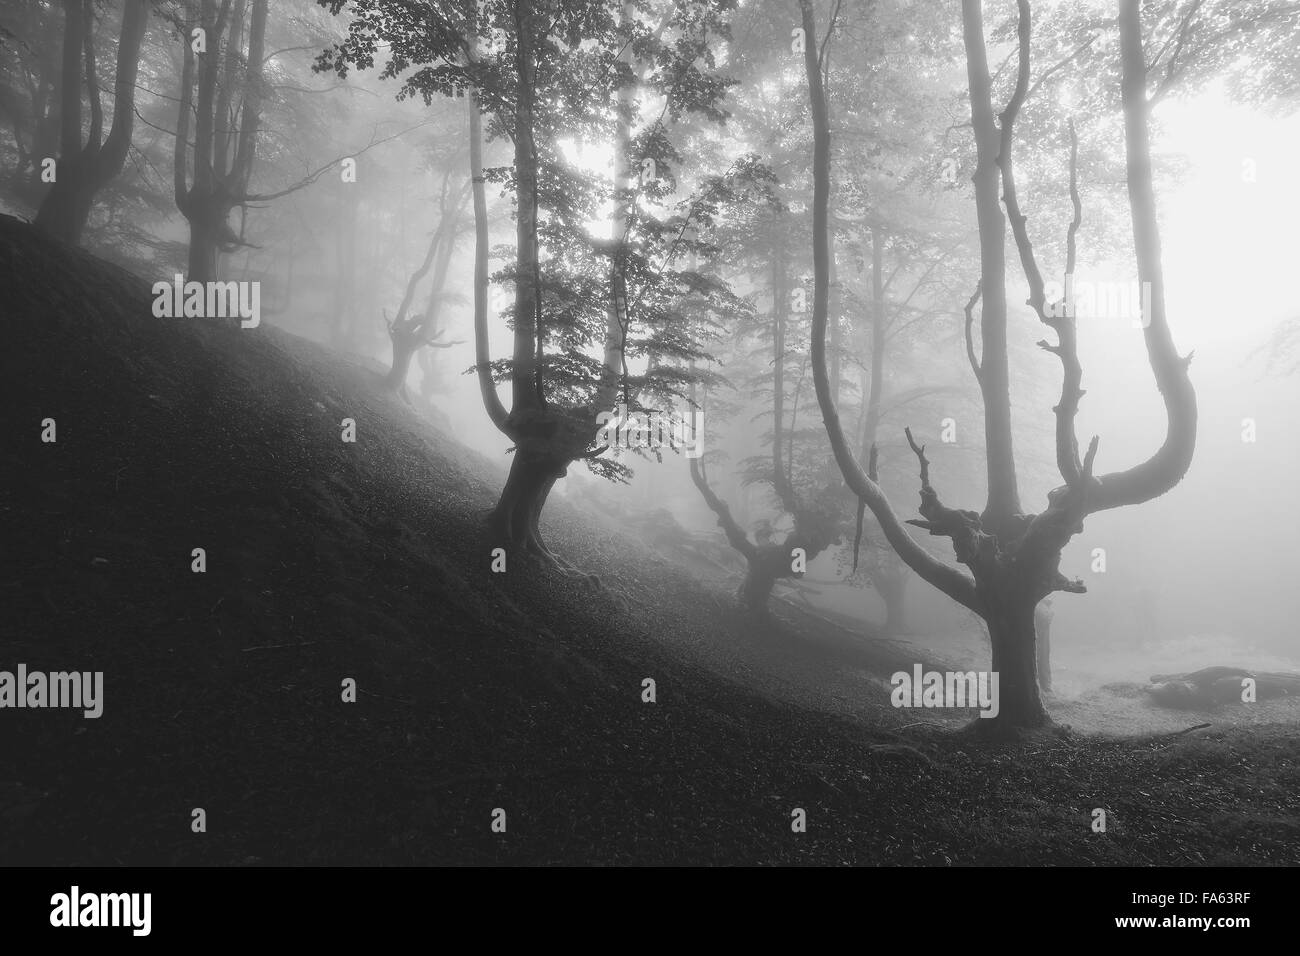 mysterious creepy forest in black and white - Stock Image